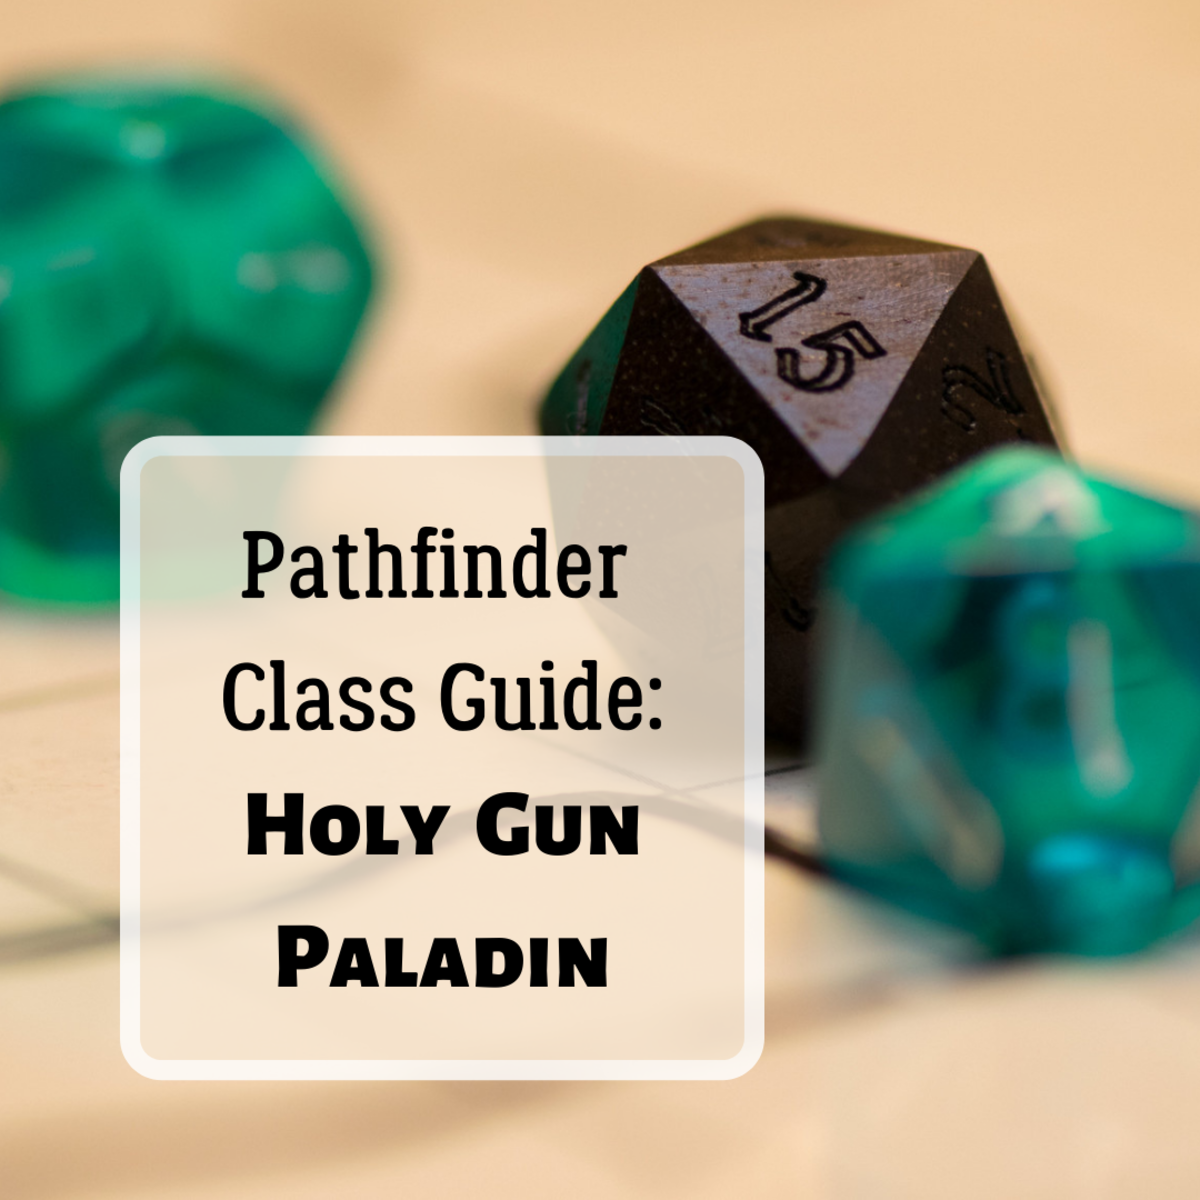 A Guide to the Holy Gun Paladin (Pathfinder)